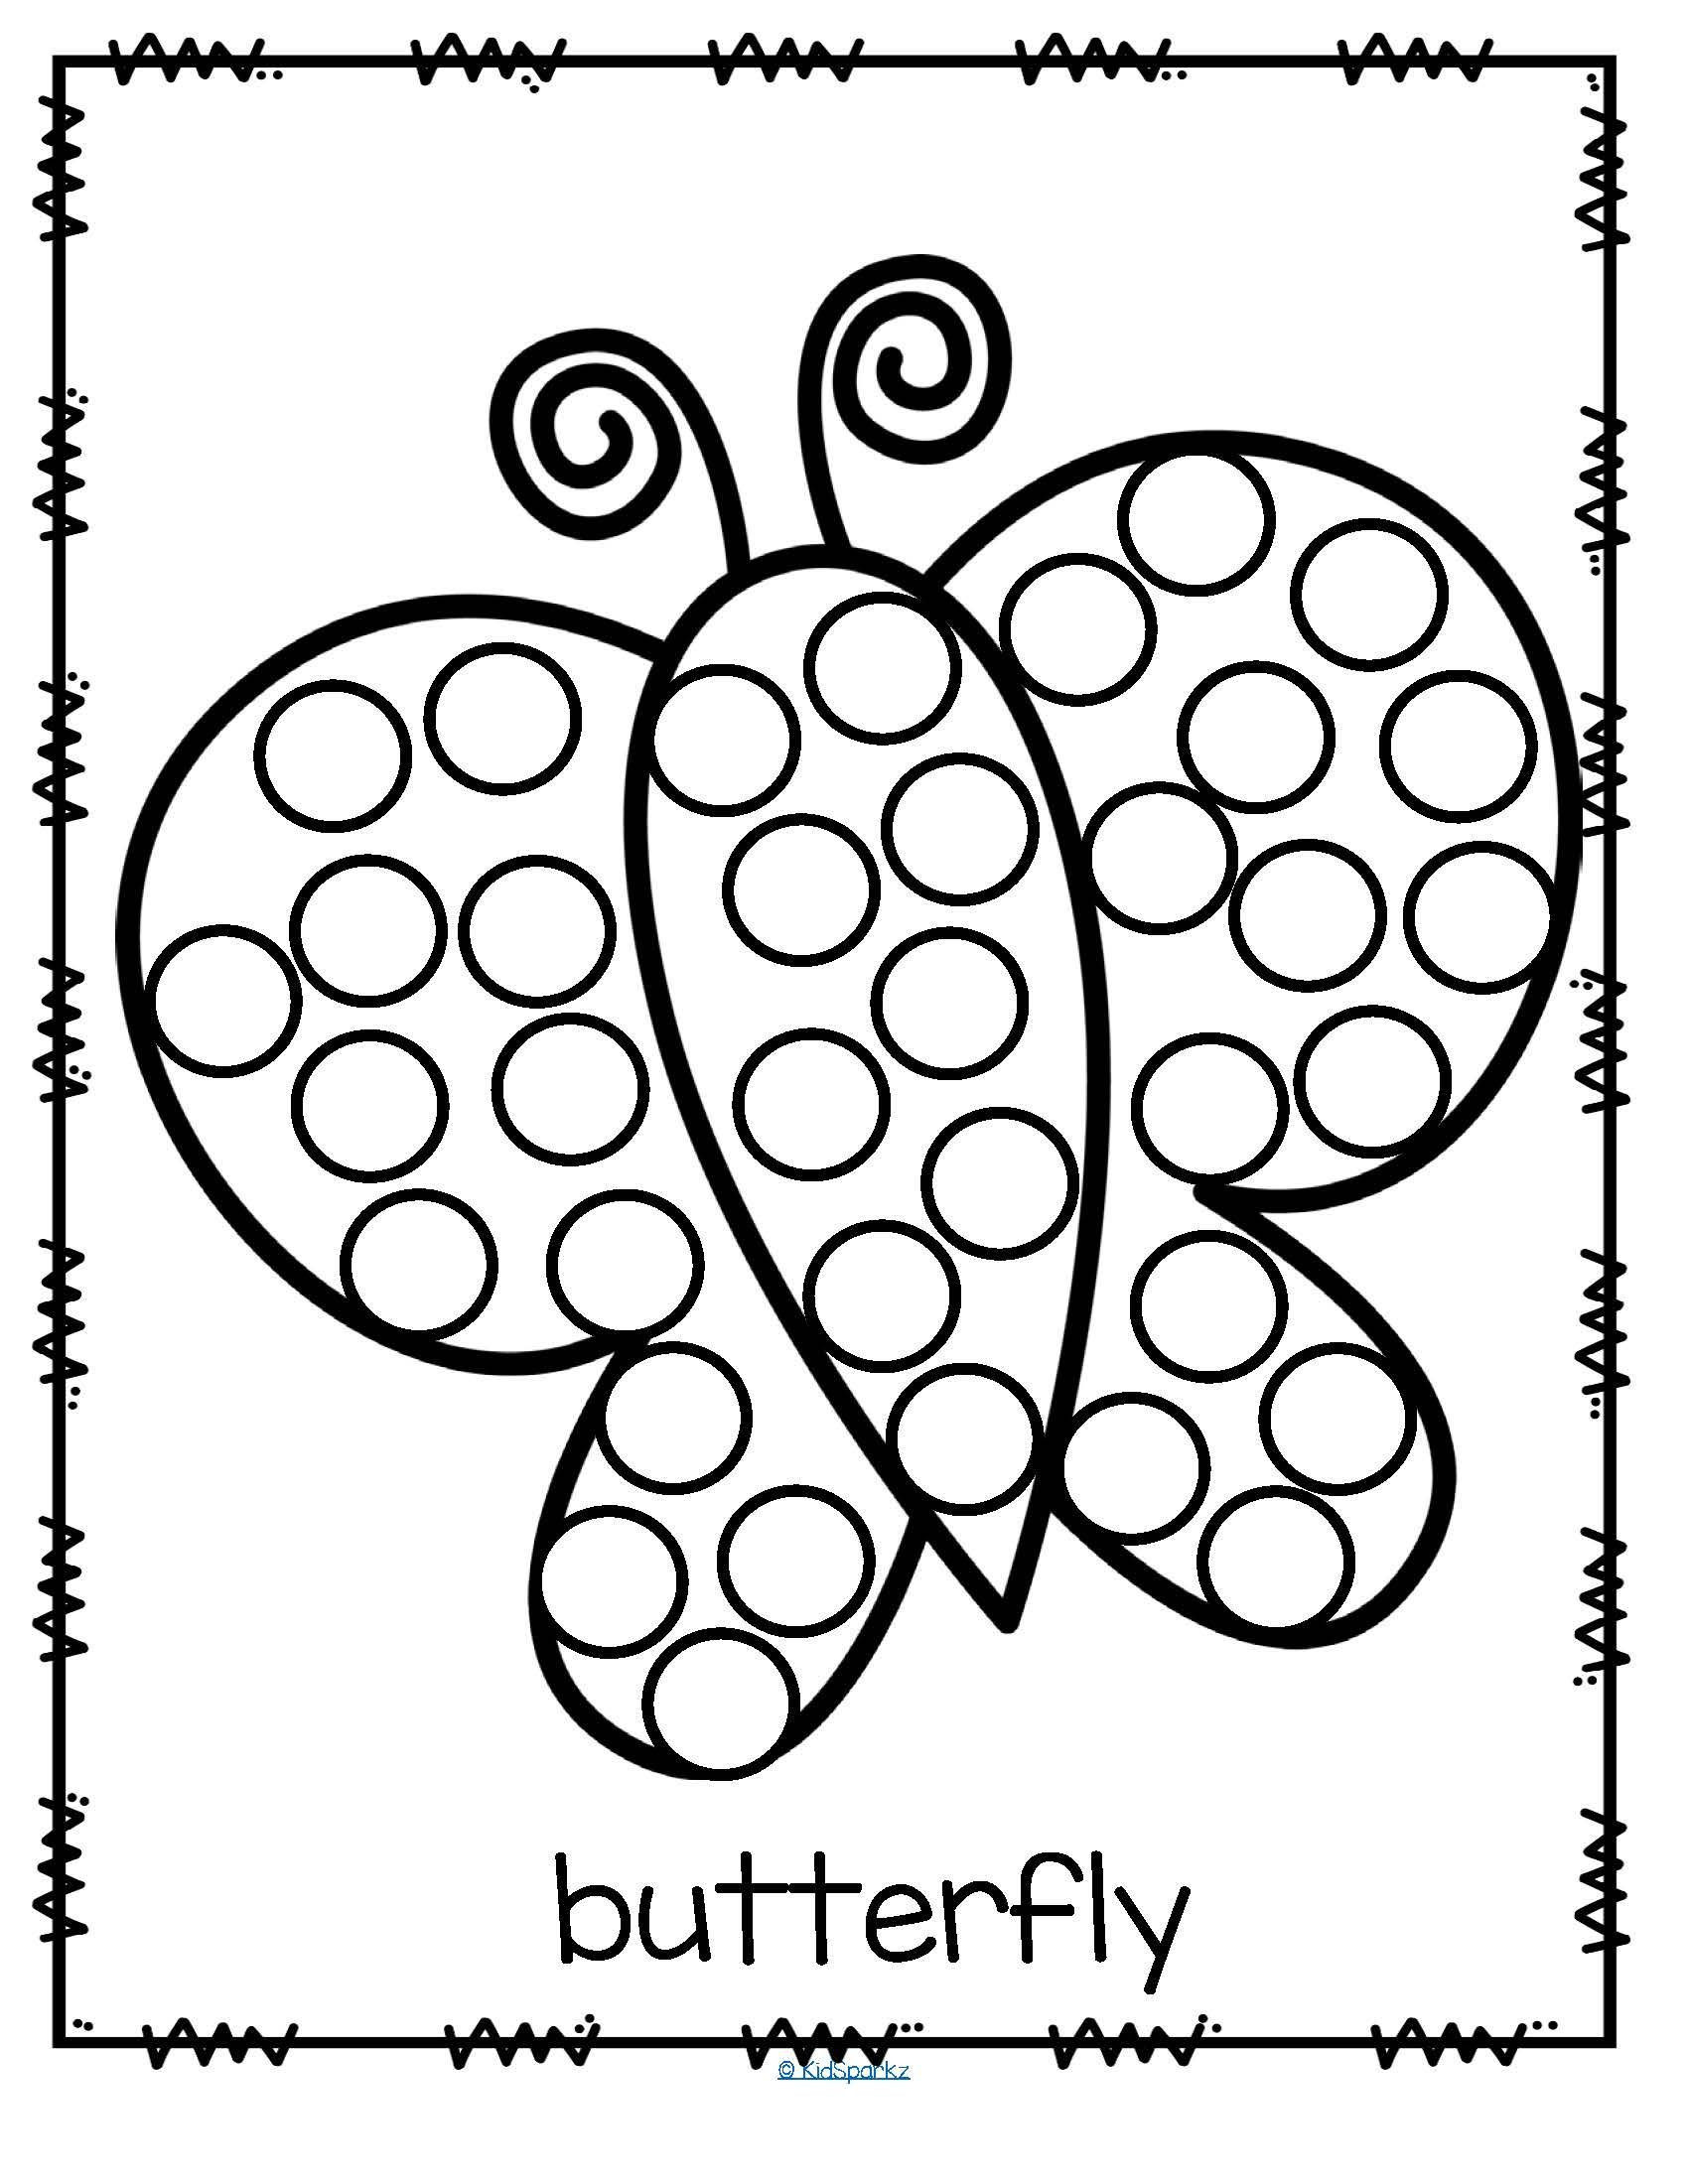 Dot to Dot Art Printables 26 Free Printable Dot Marker Templates butterfly Do A Dot